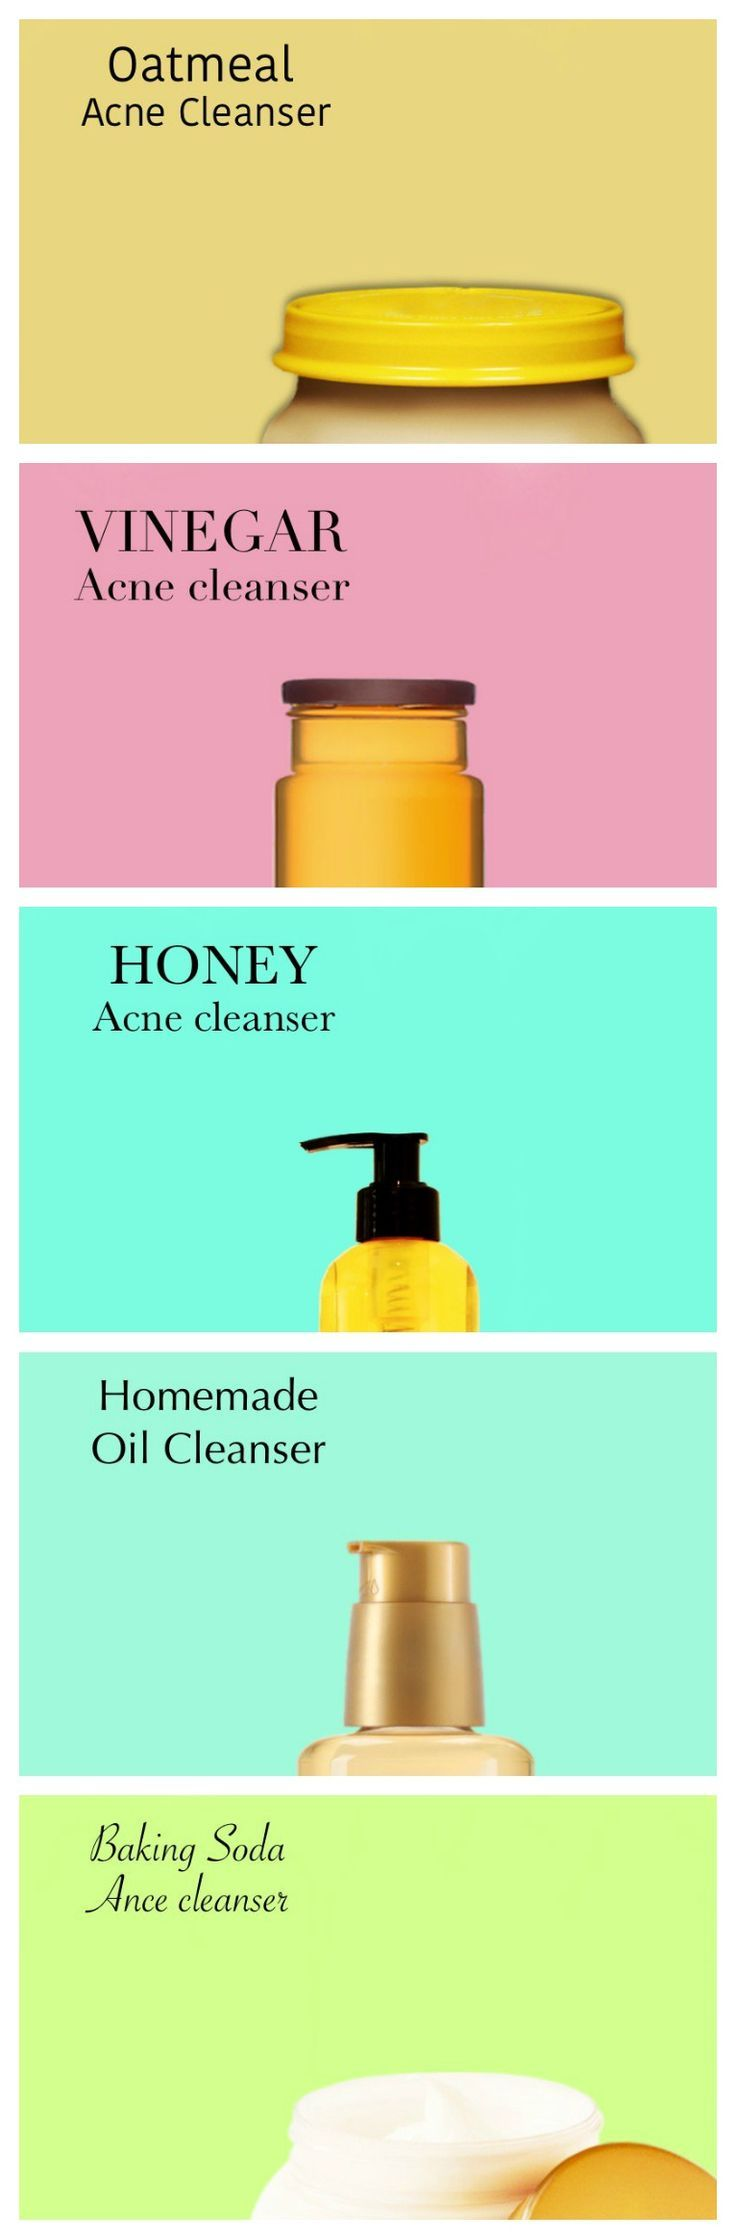 5 simple and effective homemade acne cleansers